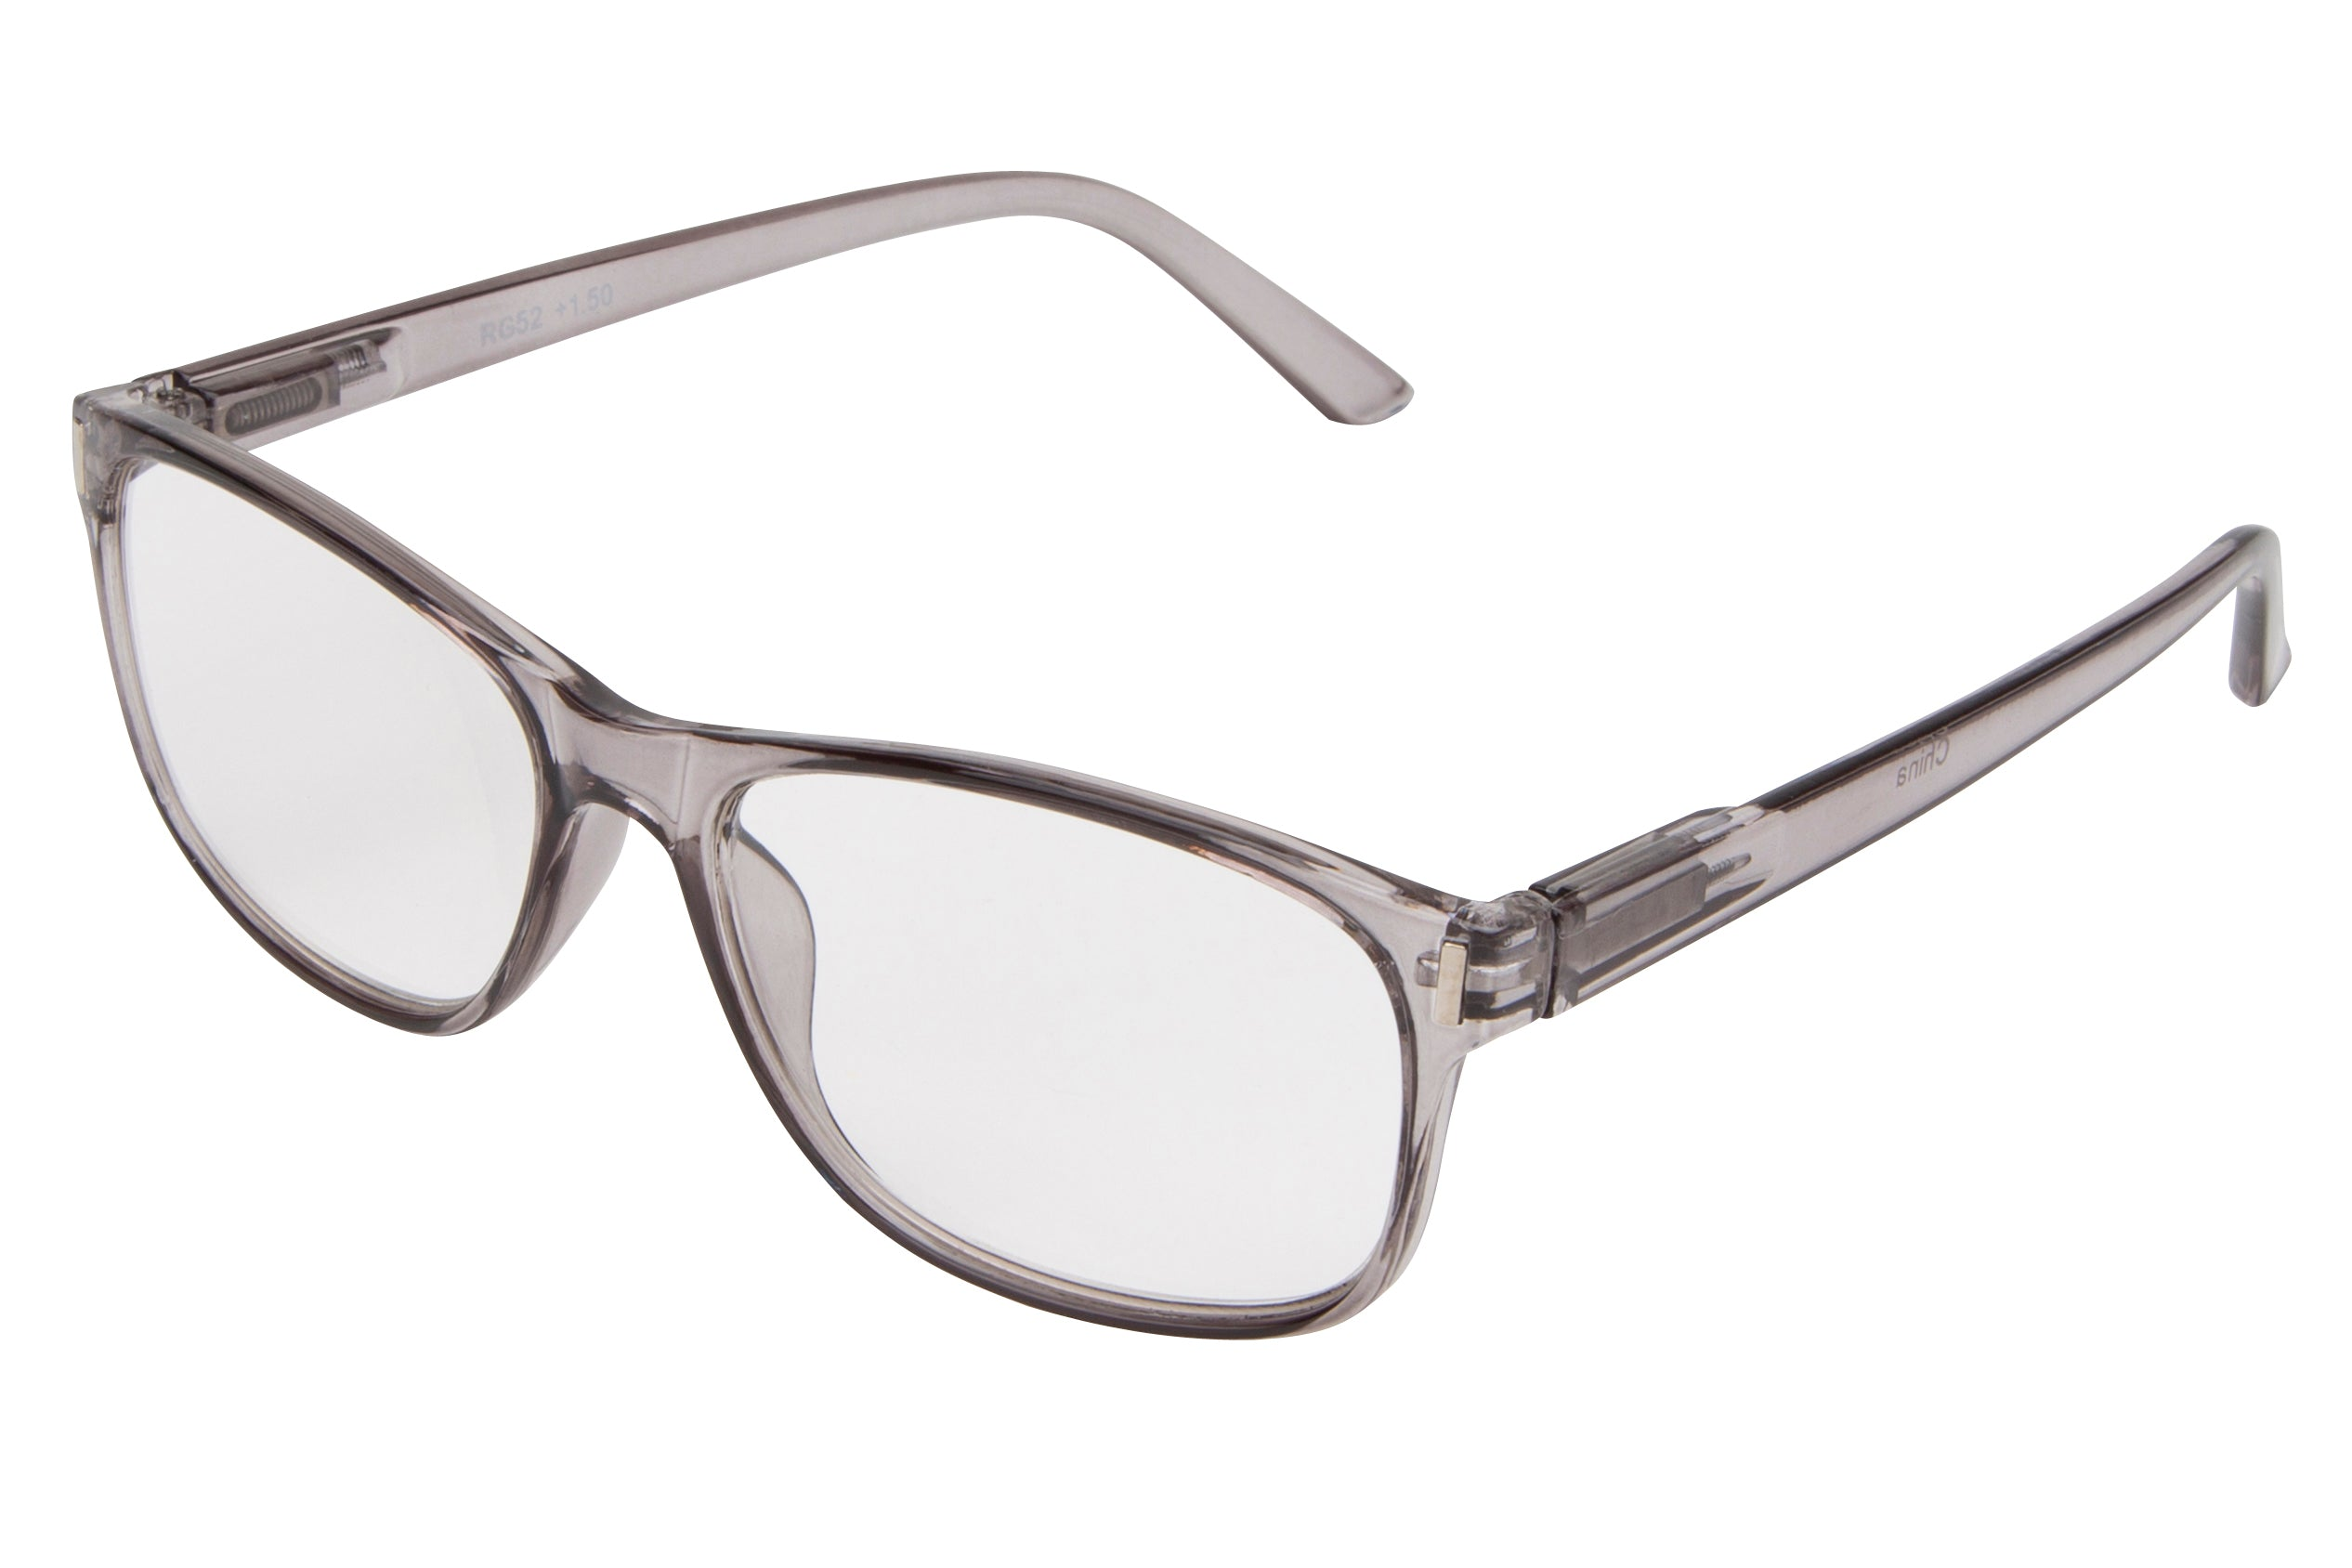 RG52 - Reading Glasses Assorted Powers